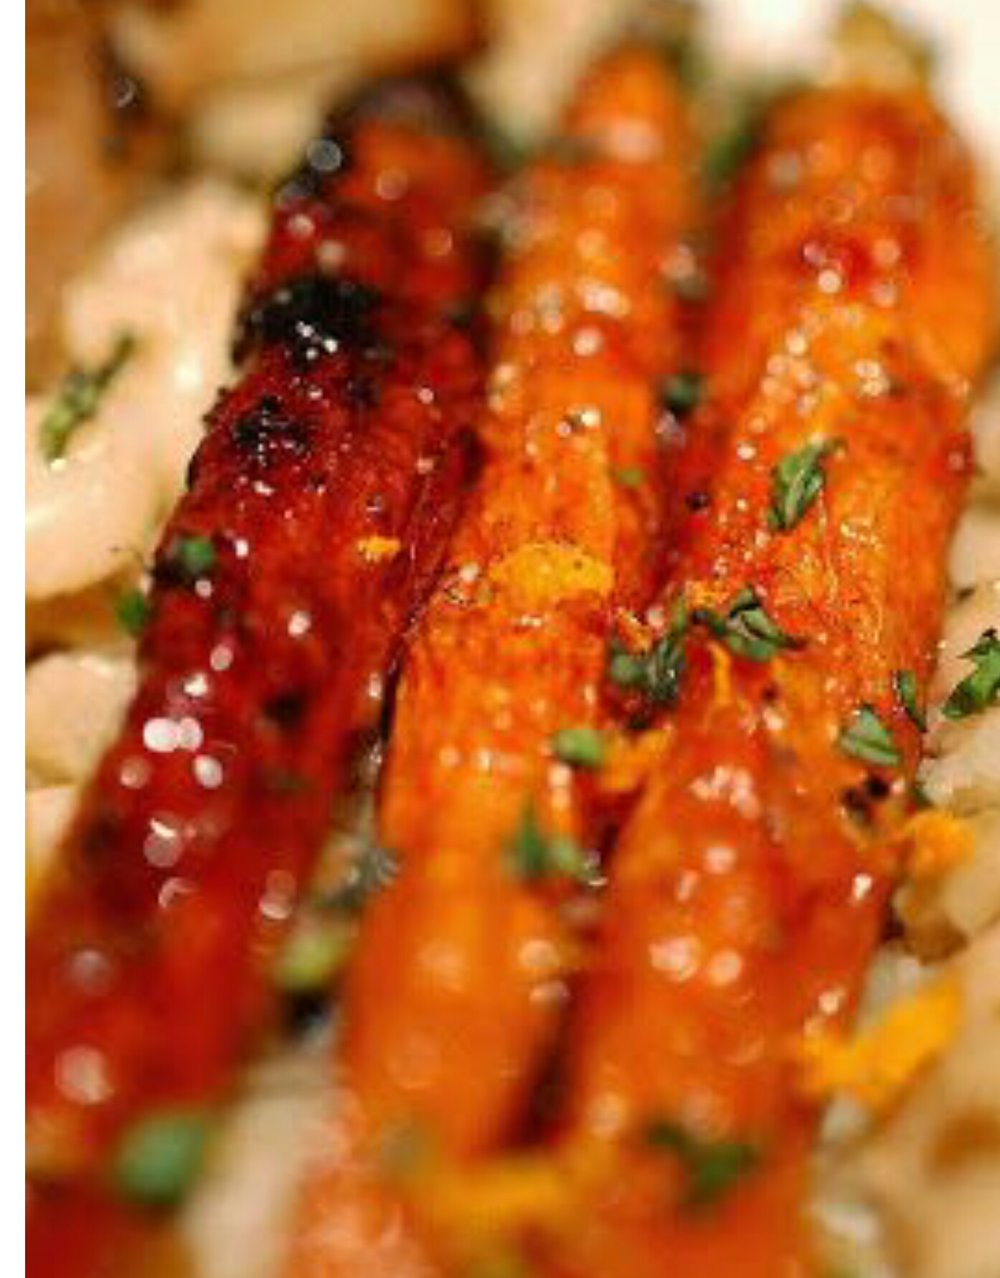 Electric carrots  2lbs youngcarrots peeled  3 cloves garlic rough chop  3T Olive oil  1/2 jar warmed EBRC  Sea salt and fresh thyme  350 oven  In a bowl toss warmed EBRC oil garlic and carrots  Place glazed carrots in a roasting pan  Oven 20 to 30 min till carmalized and roasted ...your nose will know... Then after placing on serving platter sprinkle fresh chopped thyme and a sprinkle of sea salt to taste...